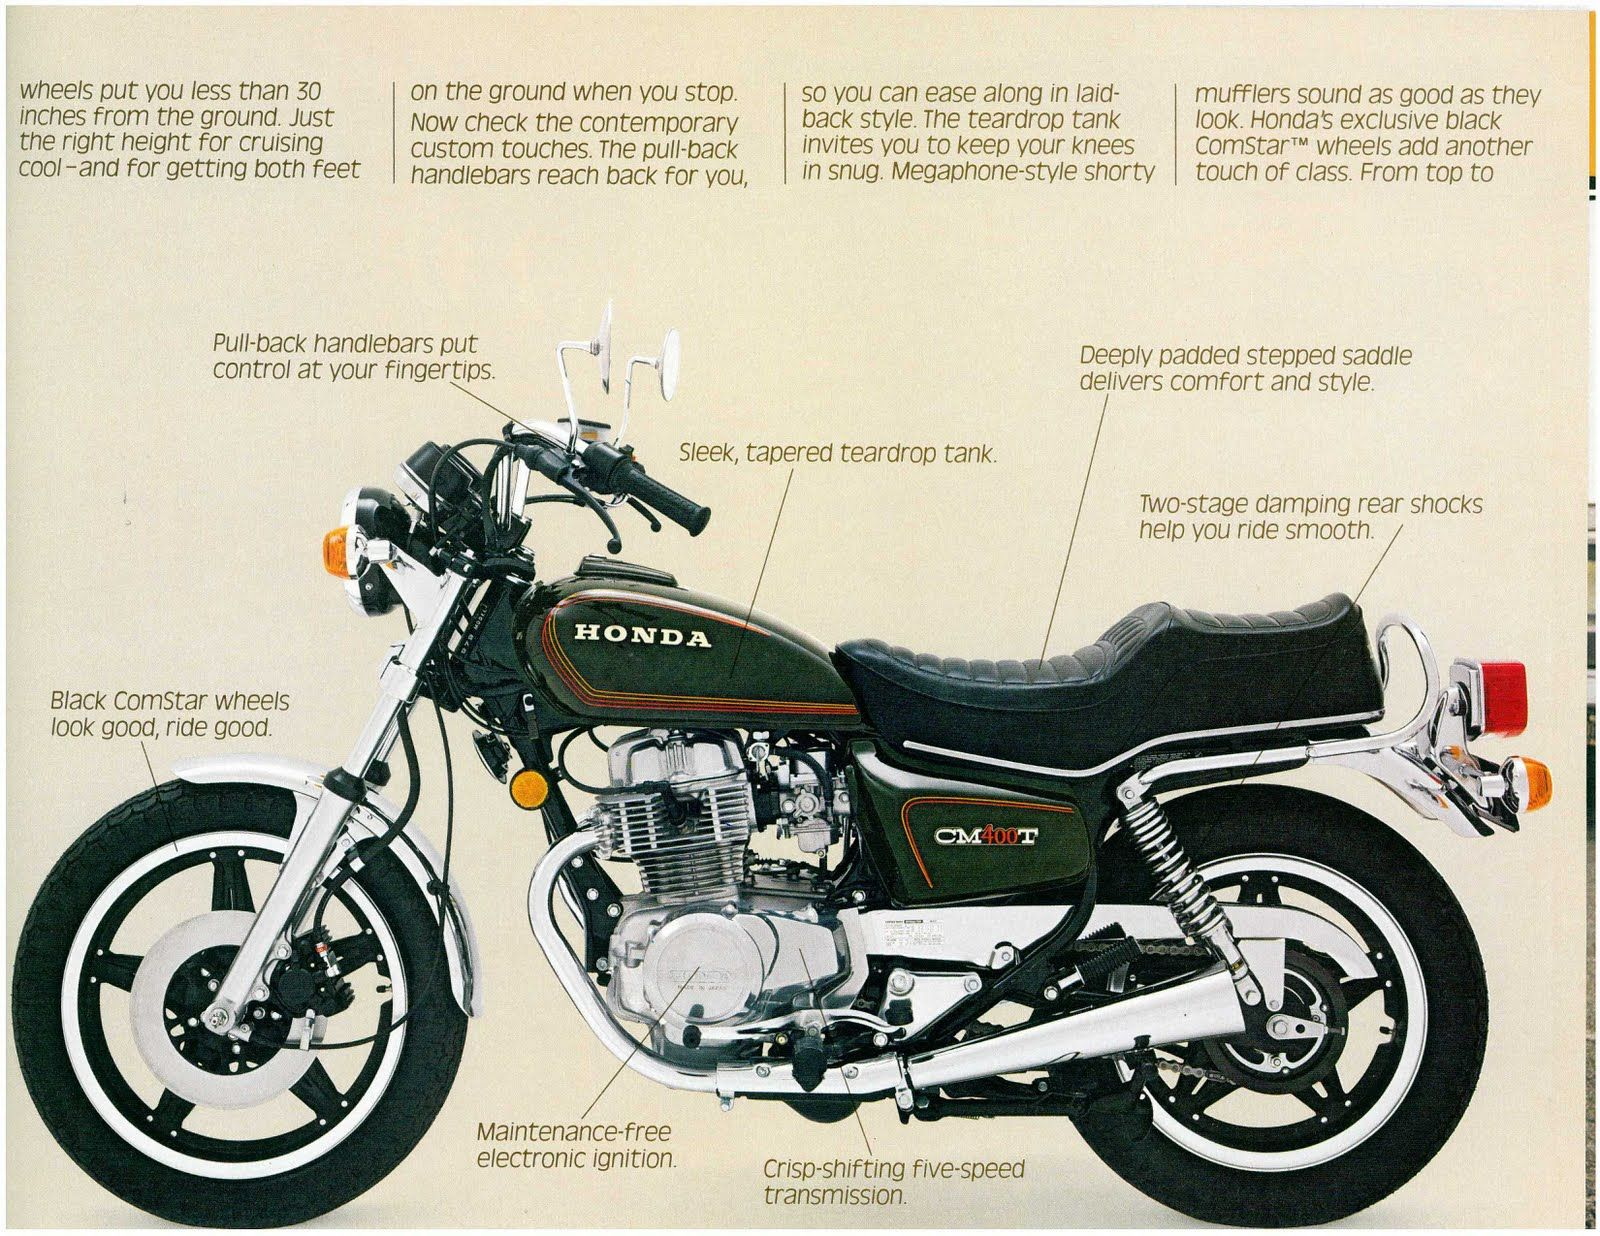 of hawks dreams honda cm400 brochure 1979 riding inspiration rh pinterest com CM400T Parts Honda CM400T Cafe Racer